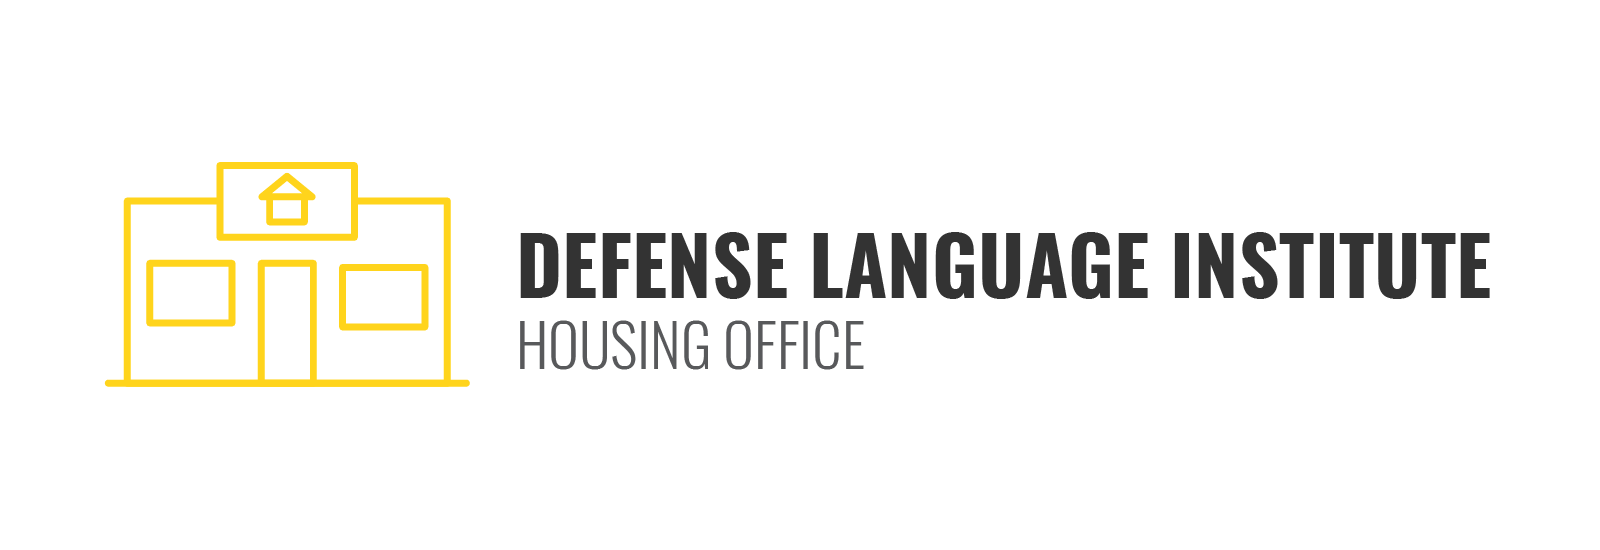 Defense Language Institute Housing Office